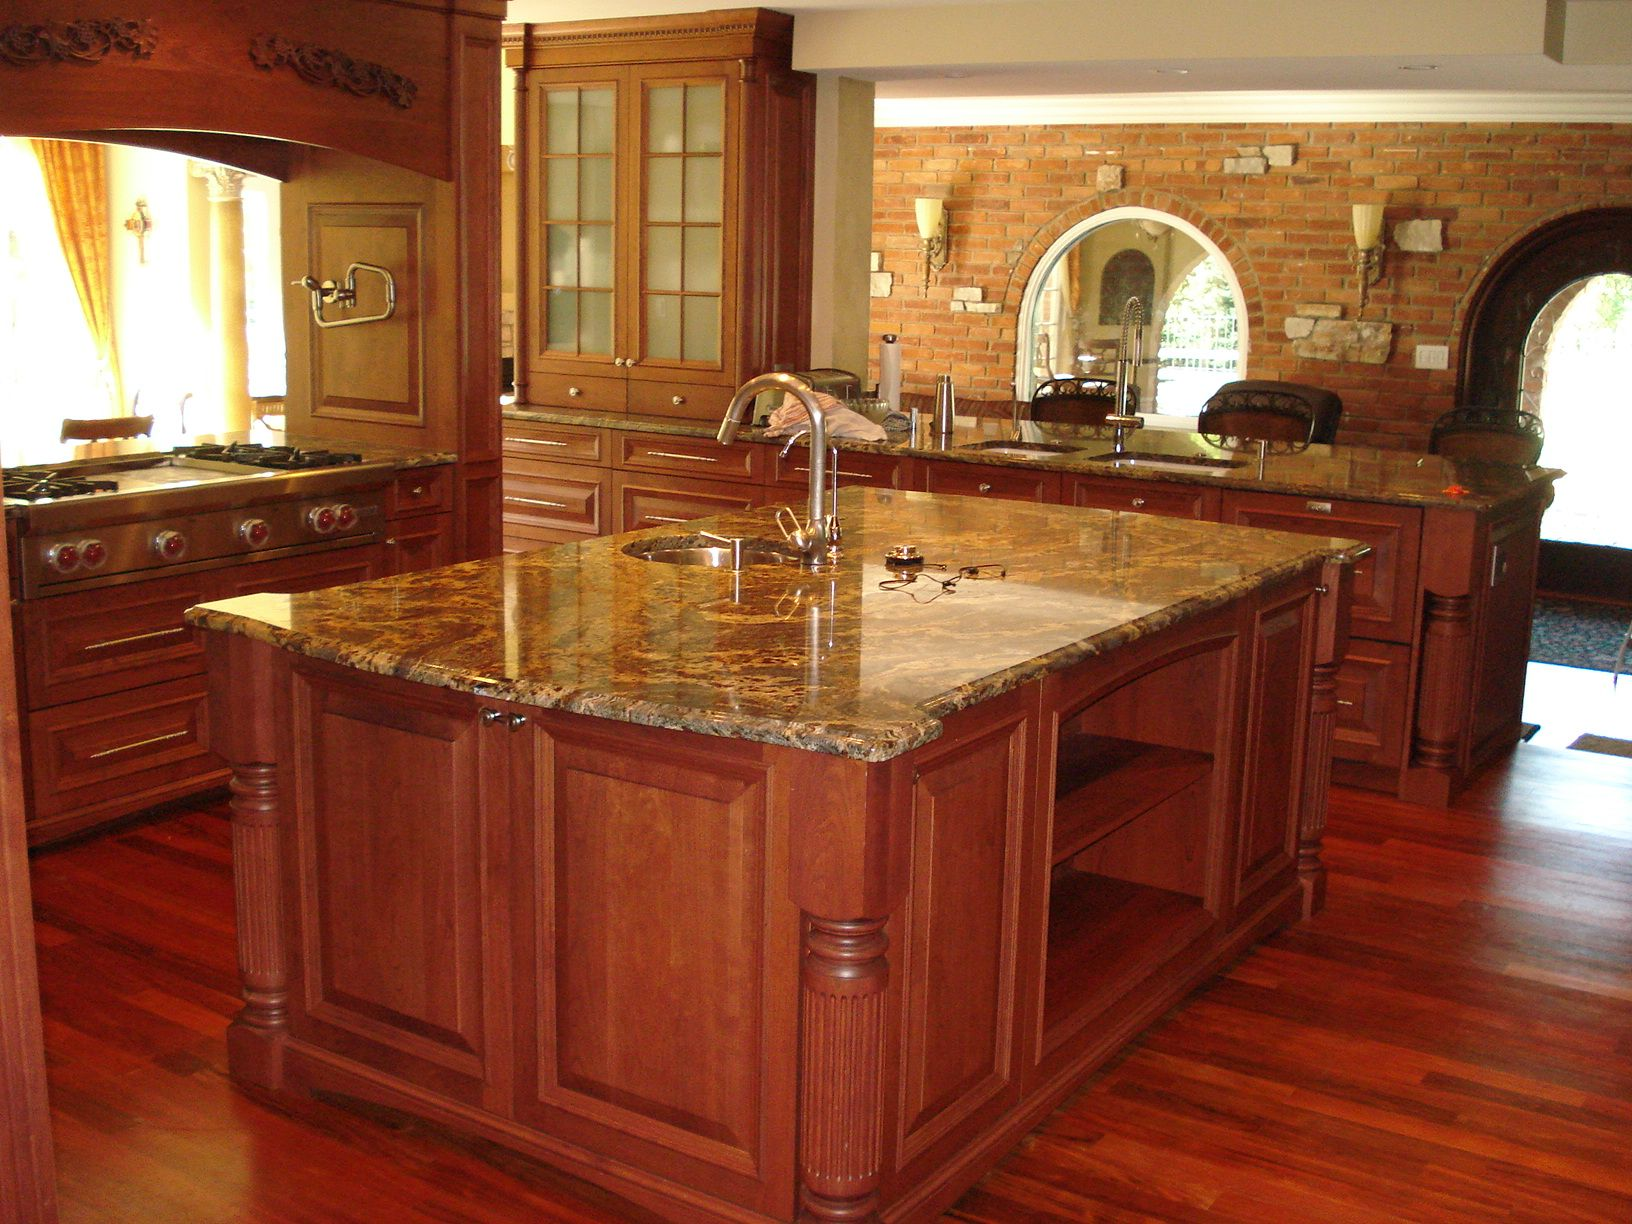 marble or granite countertops marble kitchen countertops 17 Best Images About Counter On Pinterest Countertops In